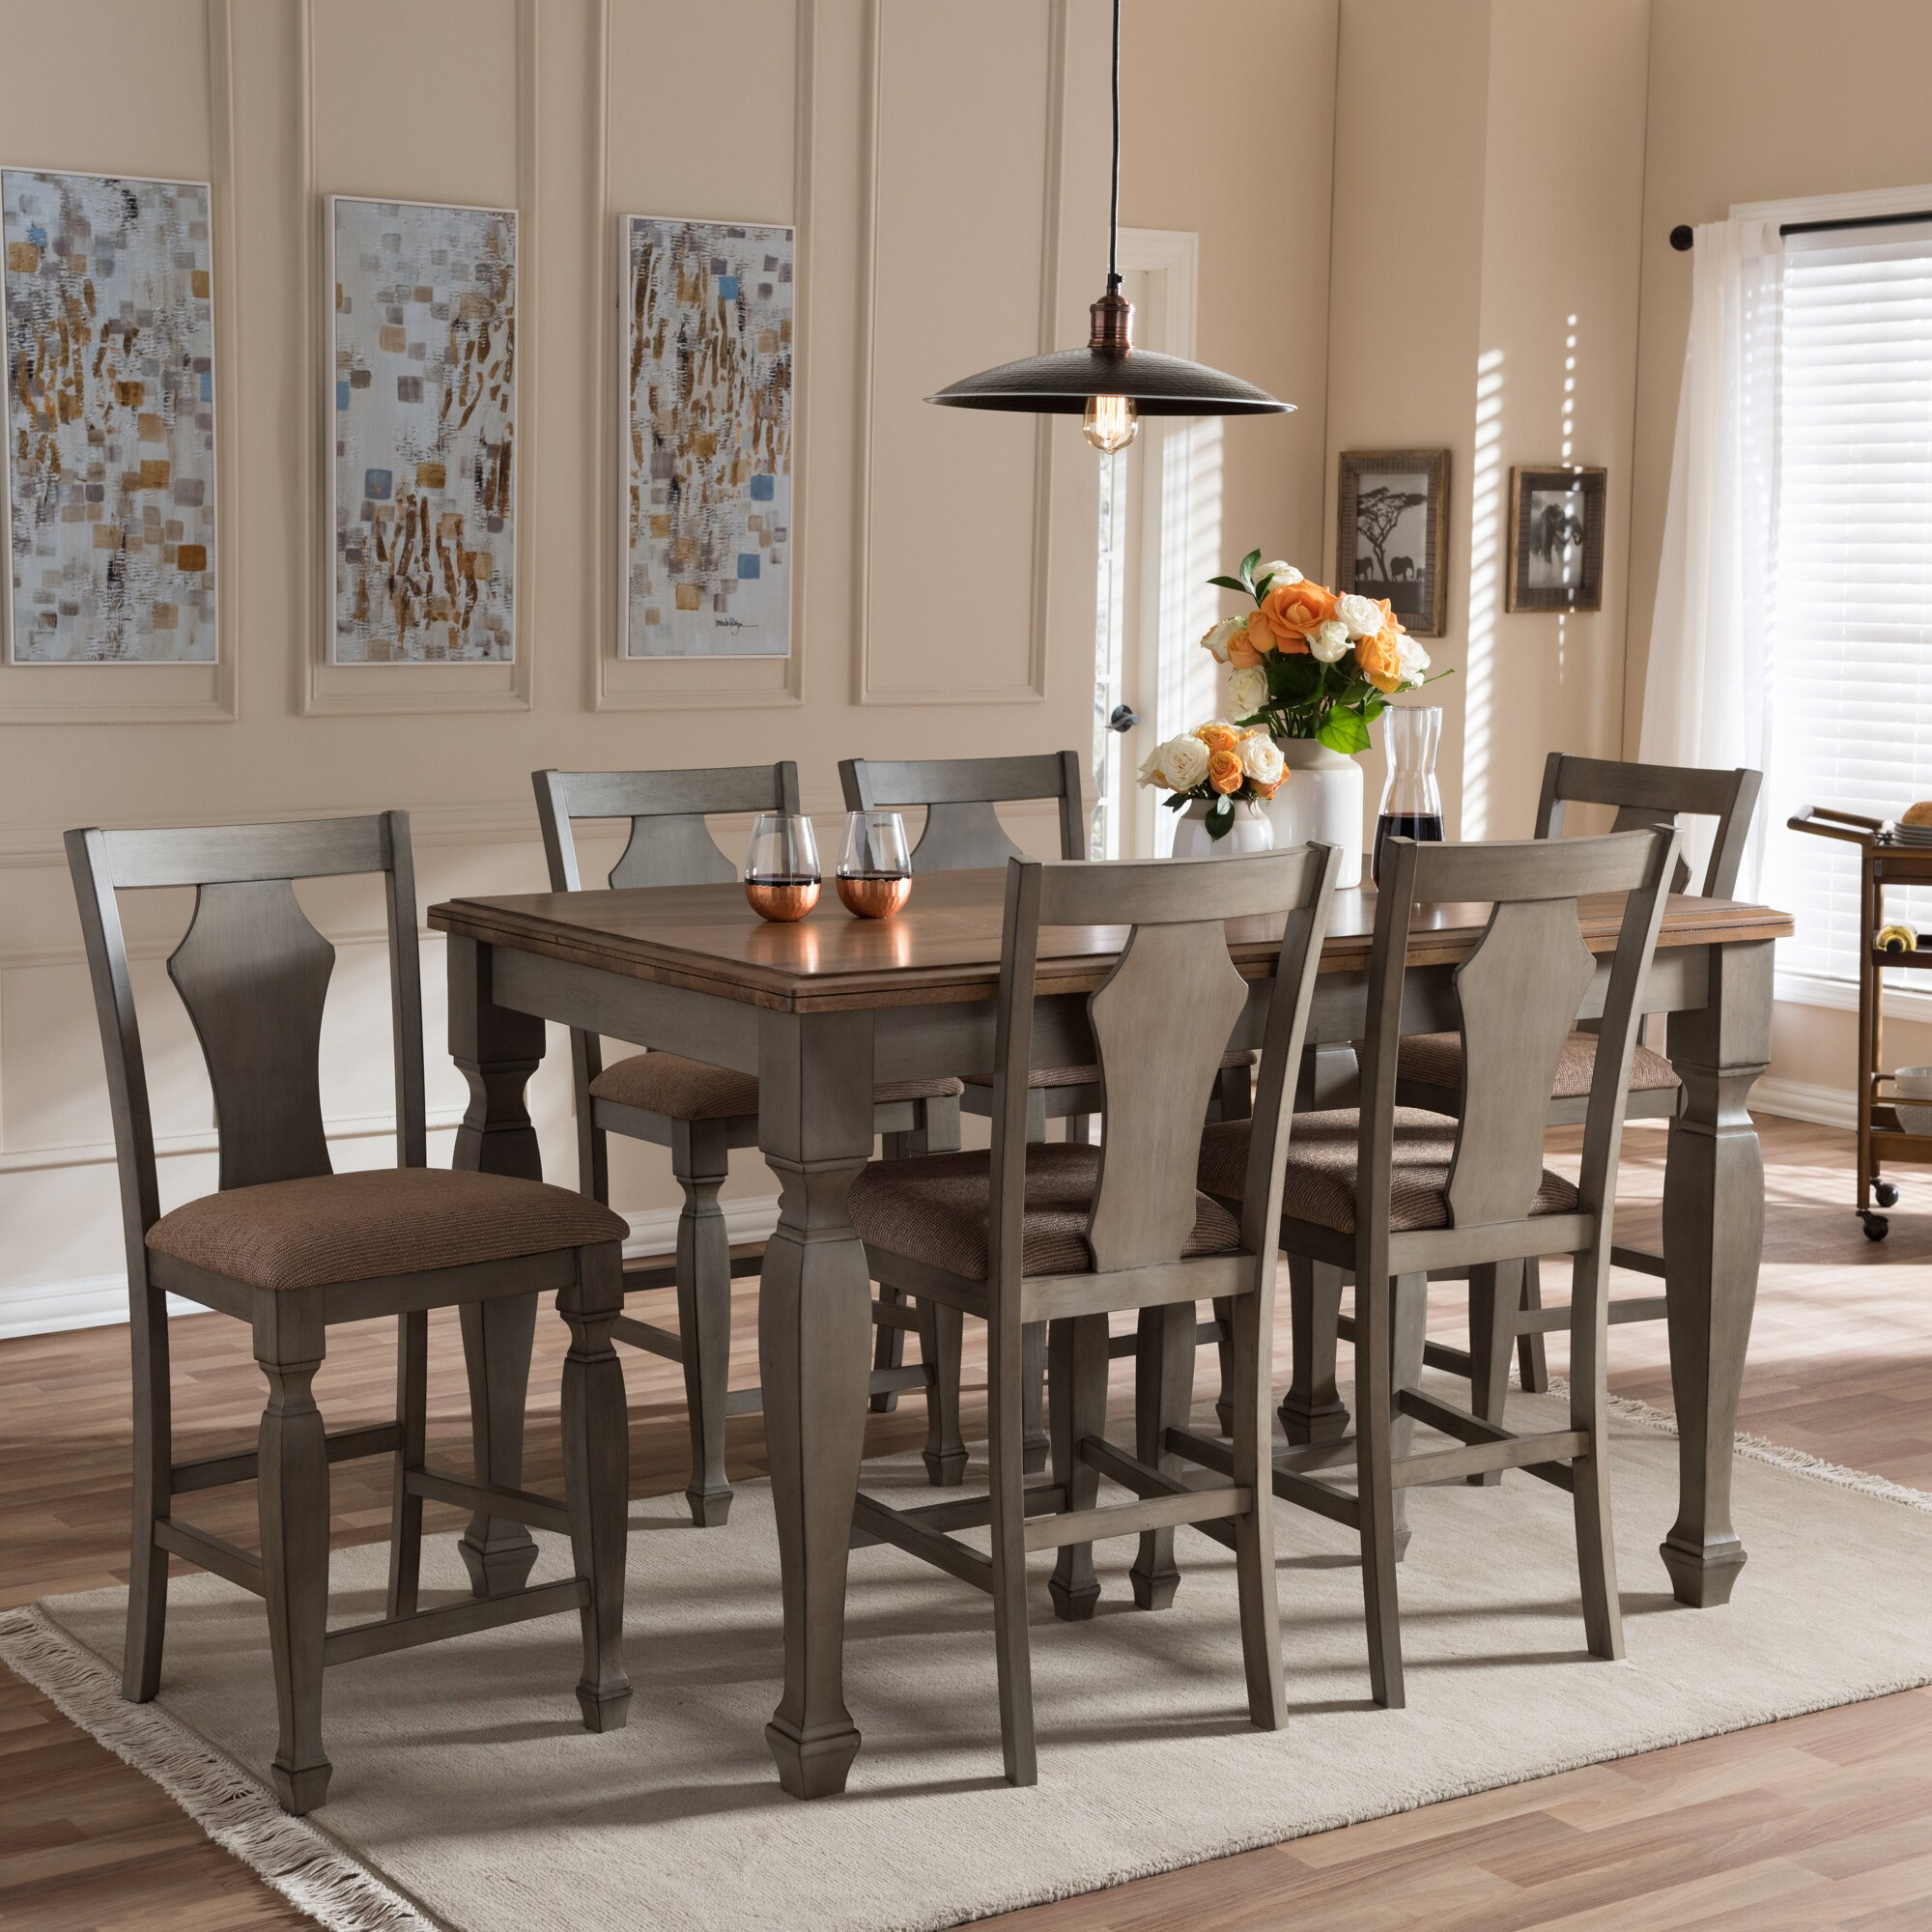 7 Piece Counter Height Dining Room Sets: Wholesale Interiors Baxton Studio Martina 7 Piece Counter